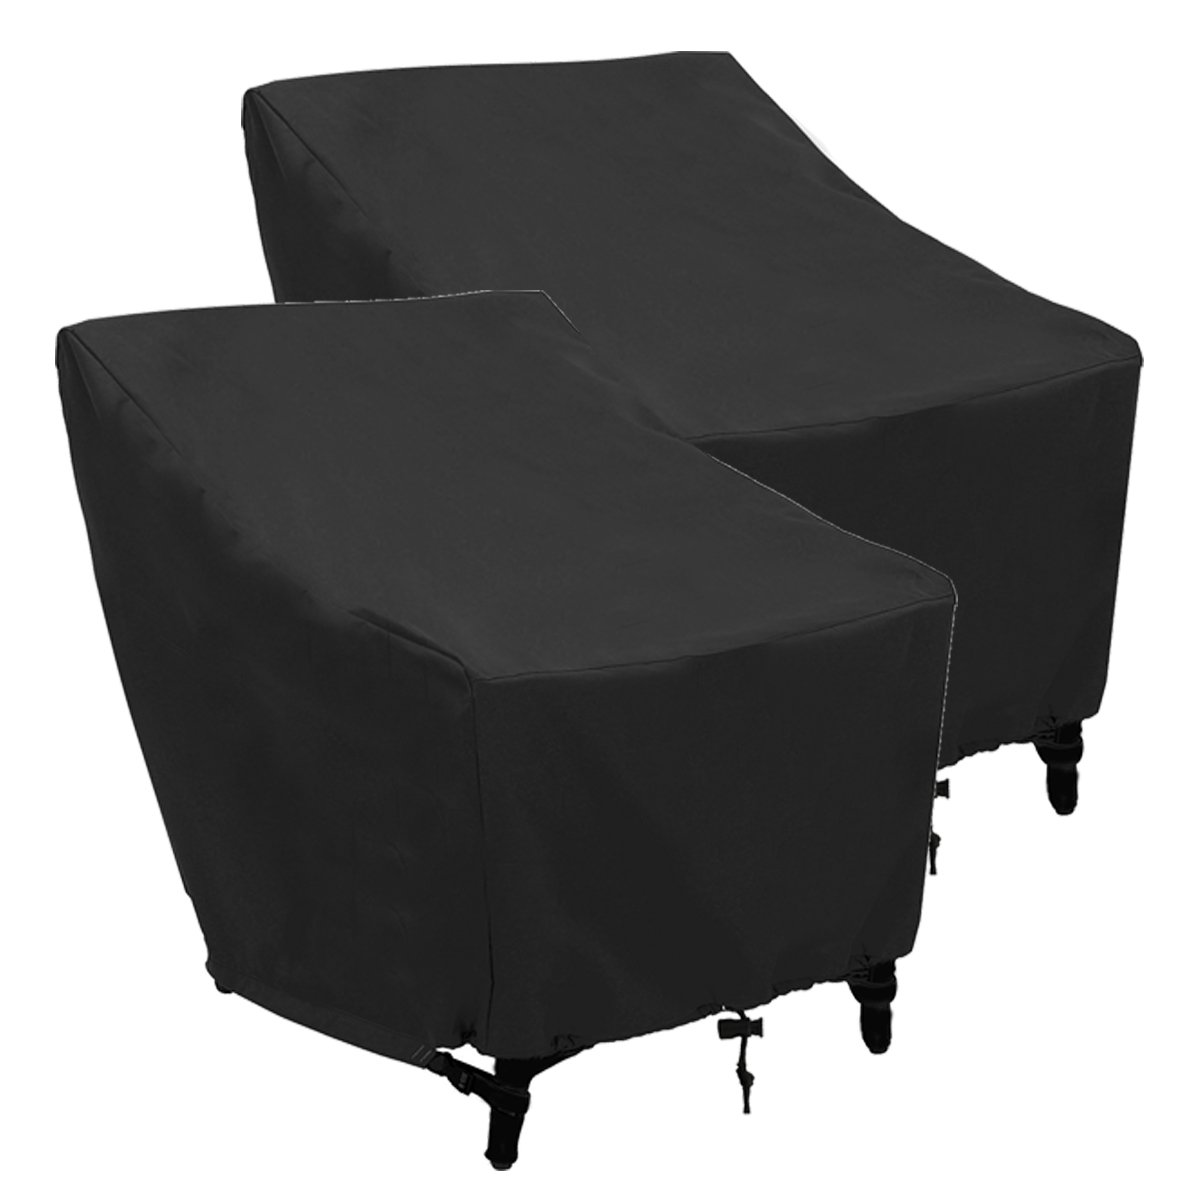 Cheap Best Patio Chairs Find Best Patio Chairs Deals On Line At